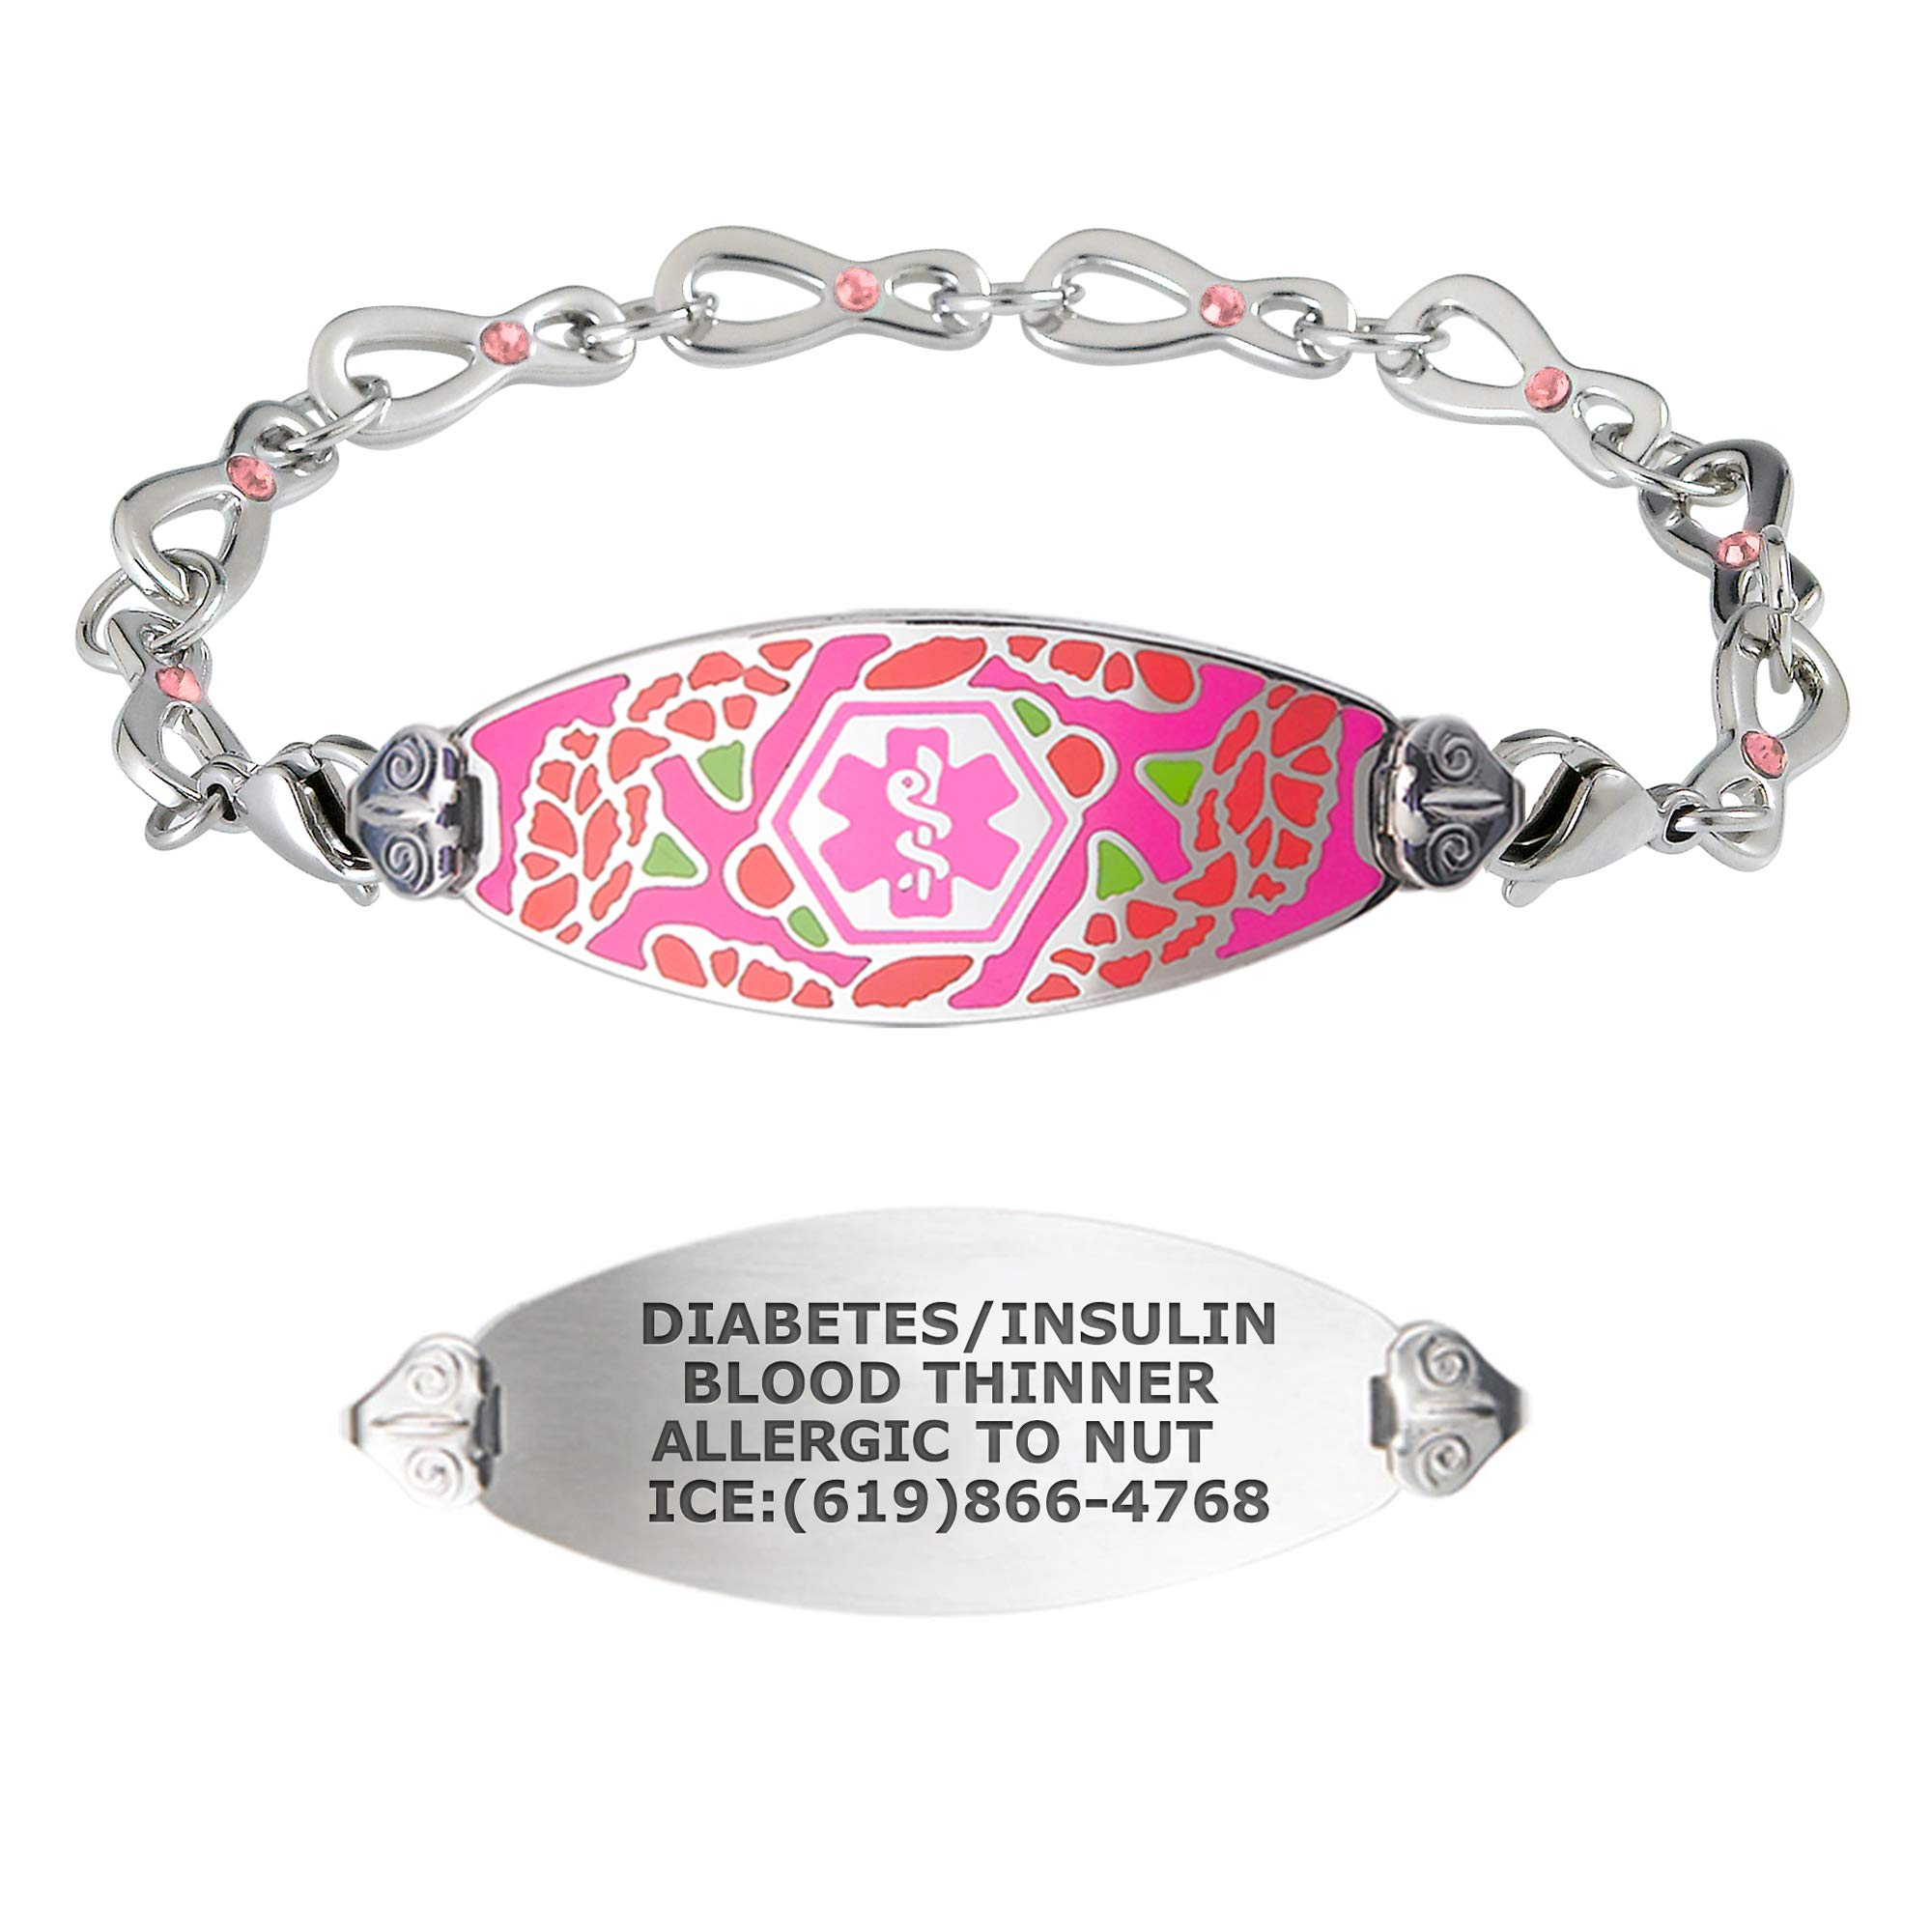 Divoti Custom Engraved Medical Alert Bracelets for Women, Stainless Steel Diabetic ID Bracelet for Mom, Mothers w/Free Engraving – Graceful Carnation Tag w/Infinity Rose Crystal Chain– Color/Size